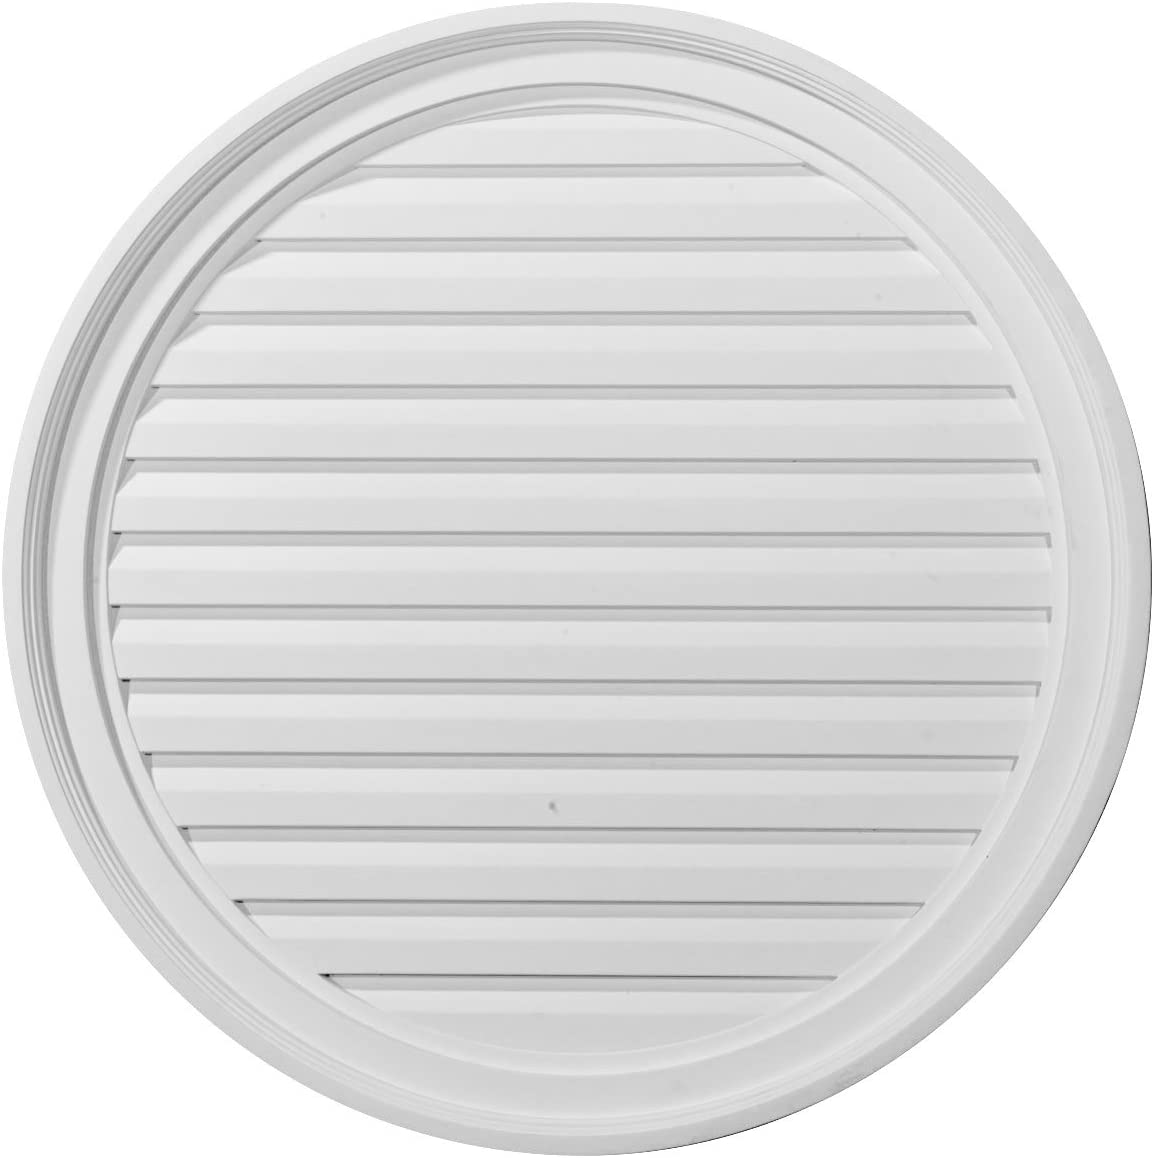 Ekena Popular Millwork GVRO28F Round Louver Vent Max 56% OFF Gable Functional 28